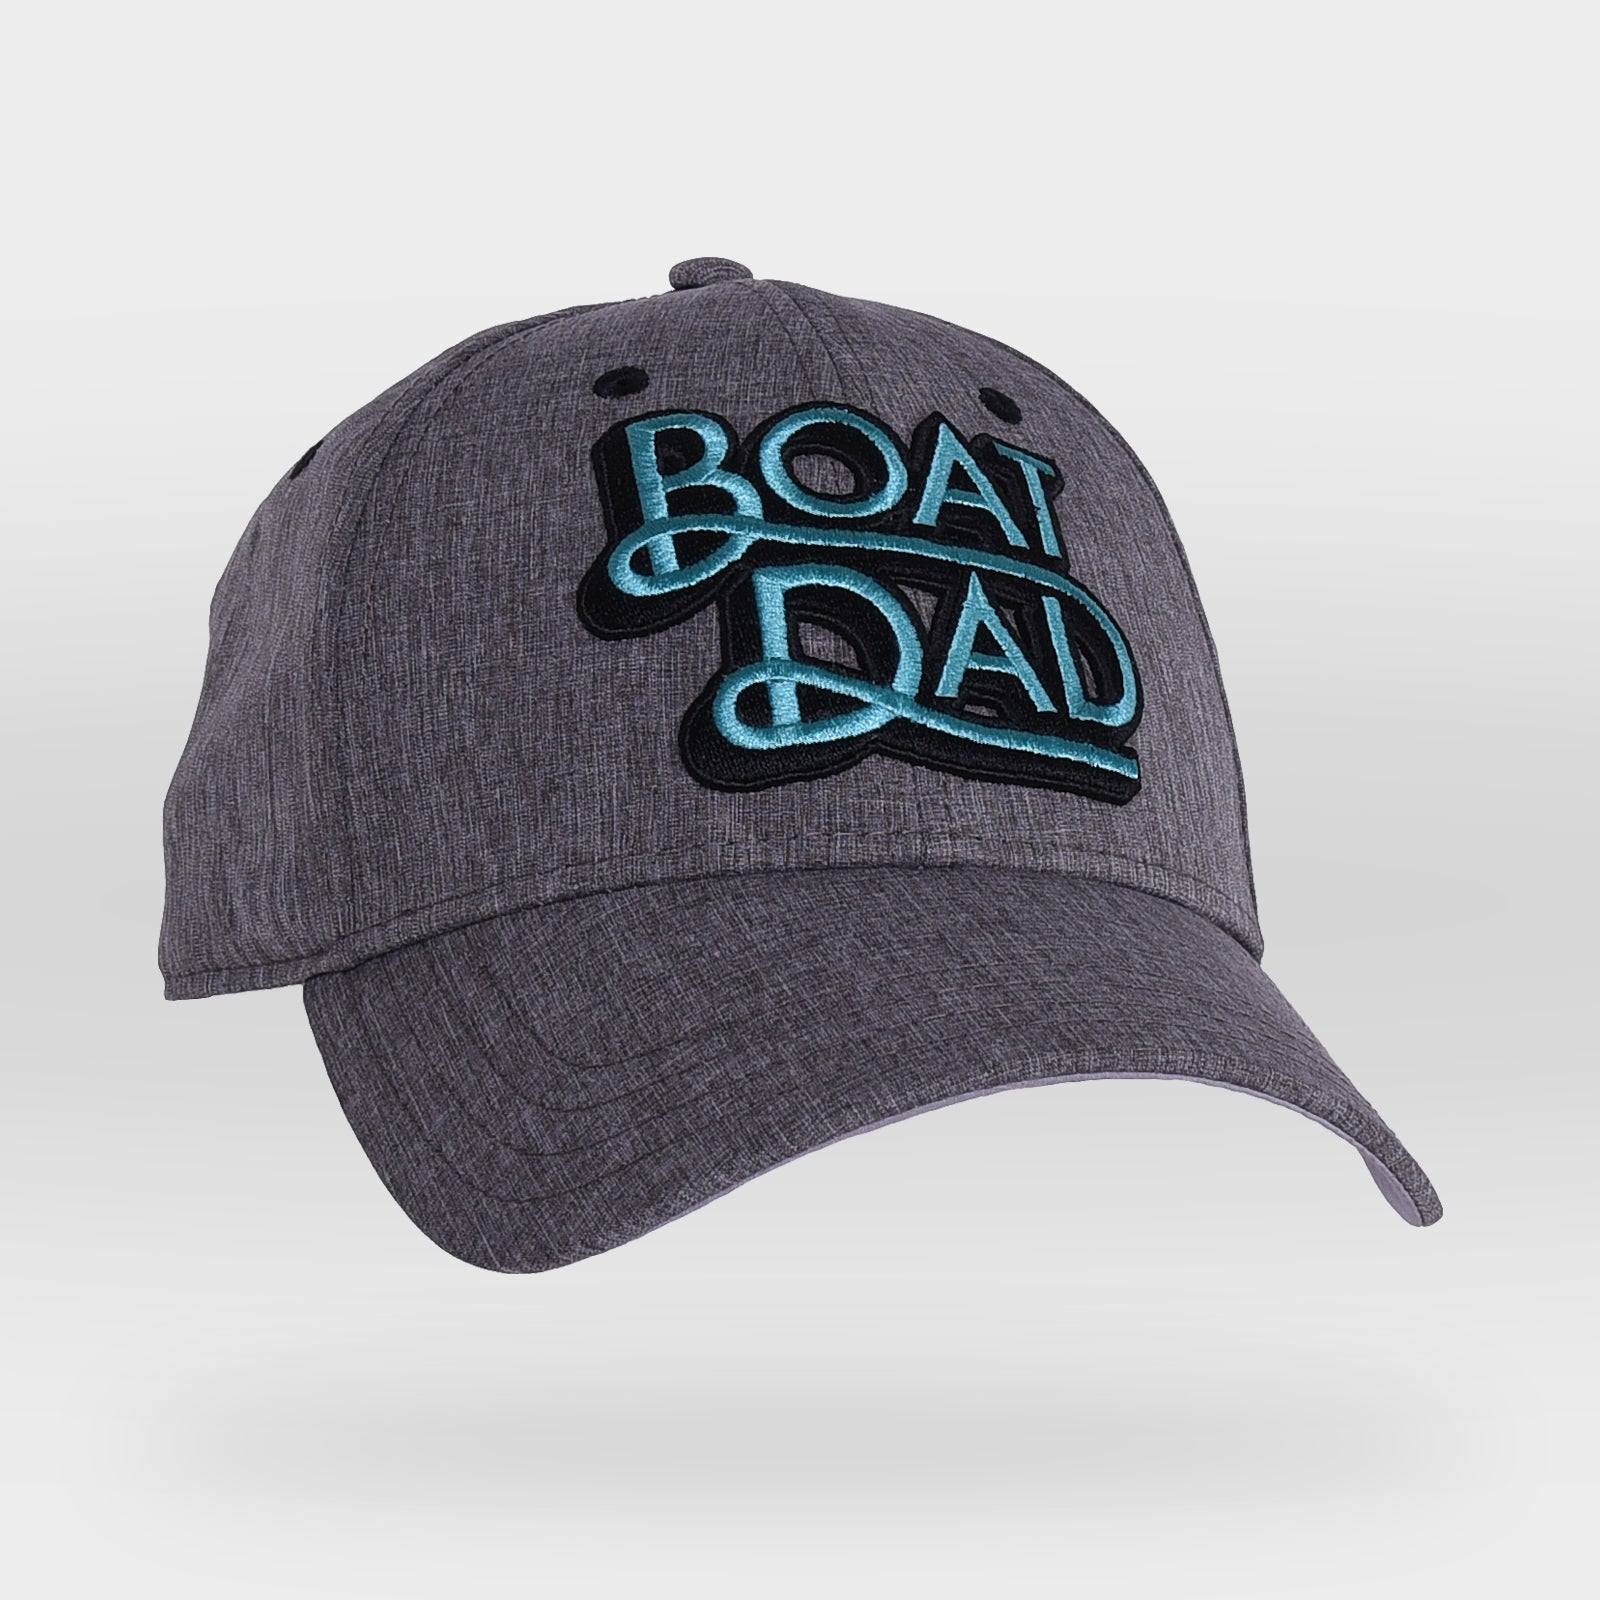 Turn this boat around Boat Dad Hat